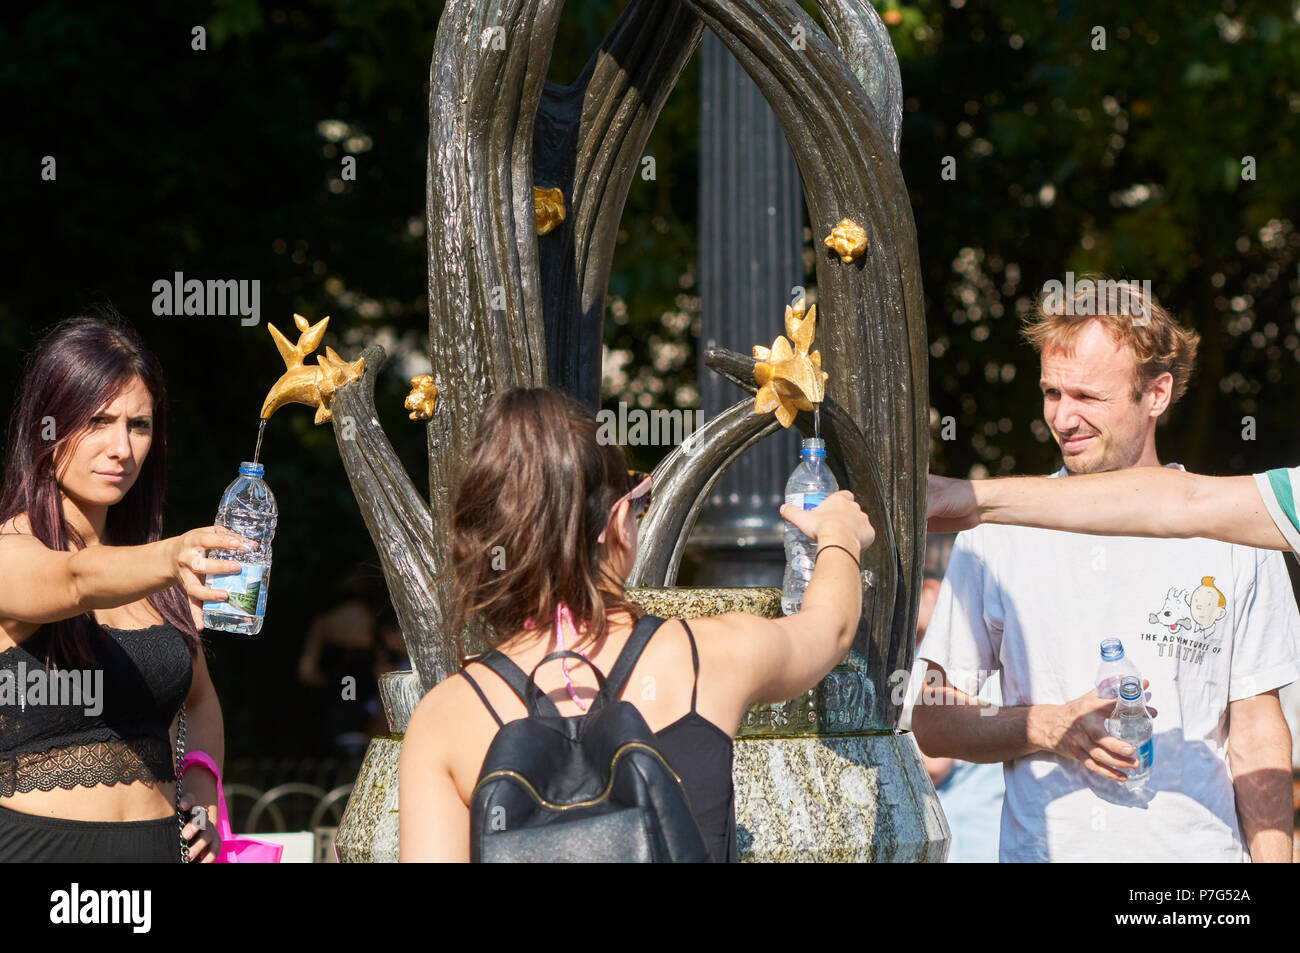 Tourists filling water bottles from the drinking fountain outside Green Park Tube station, London UK,  during the July 2018 heatwave, with temperatures of around 30 degrees - Stock Image